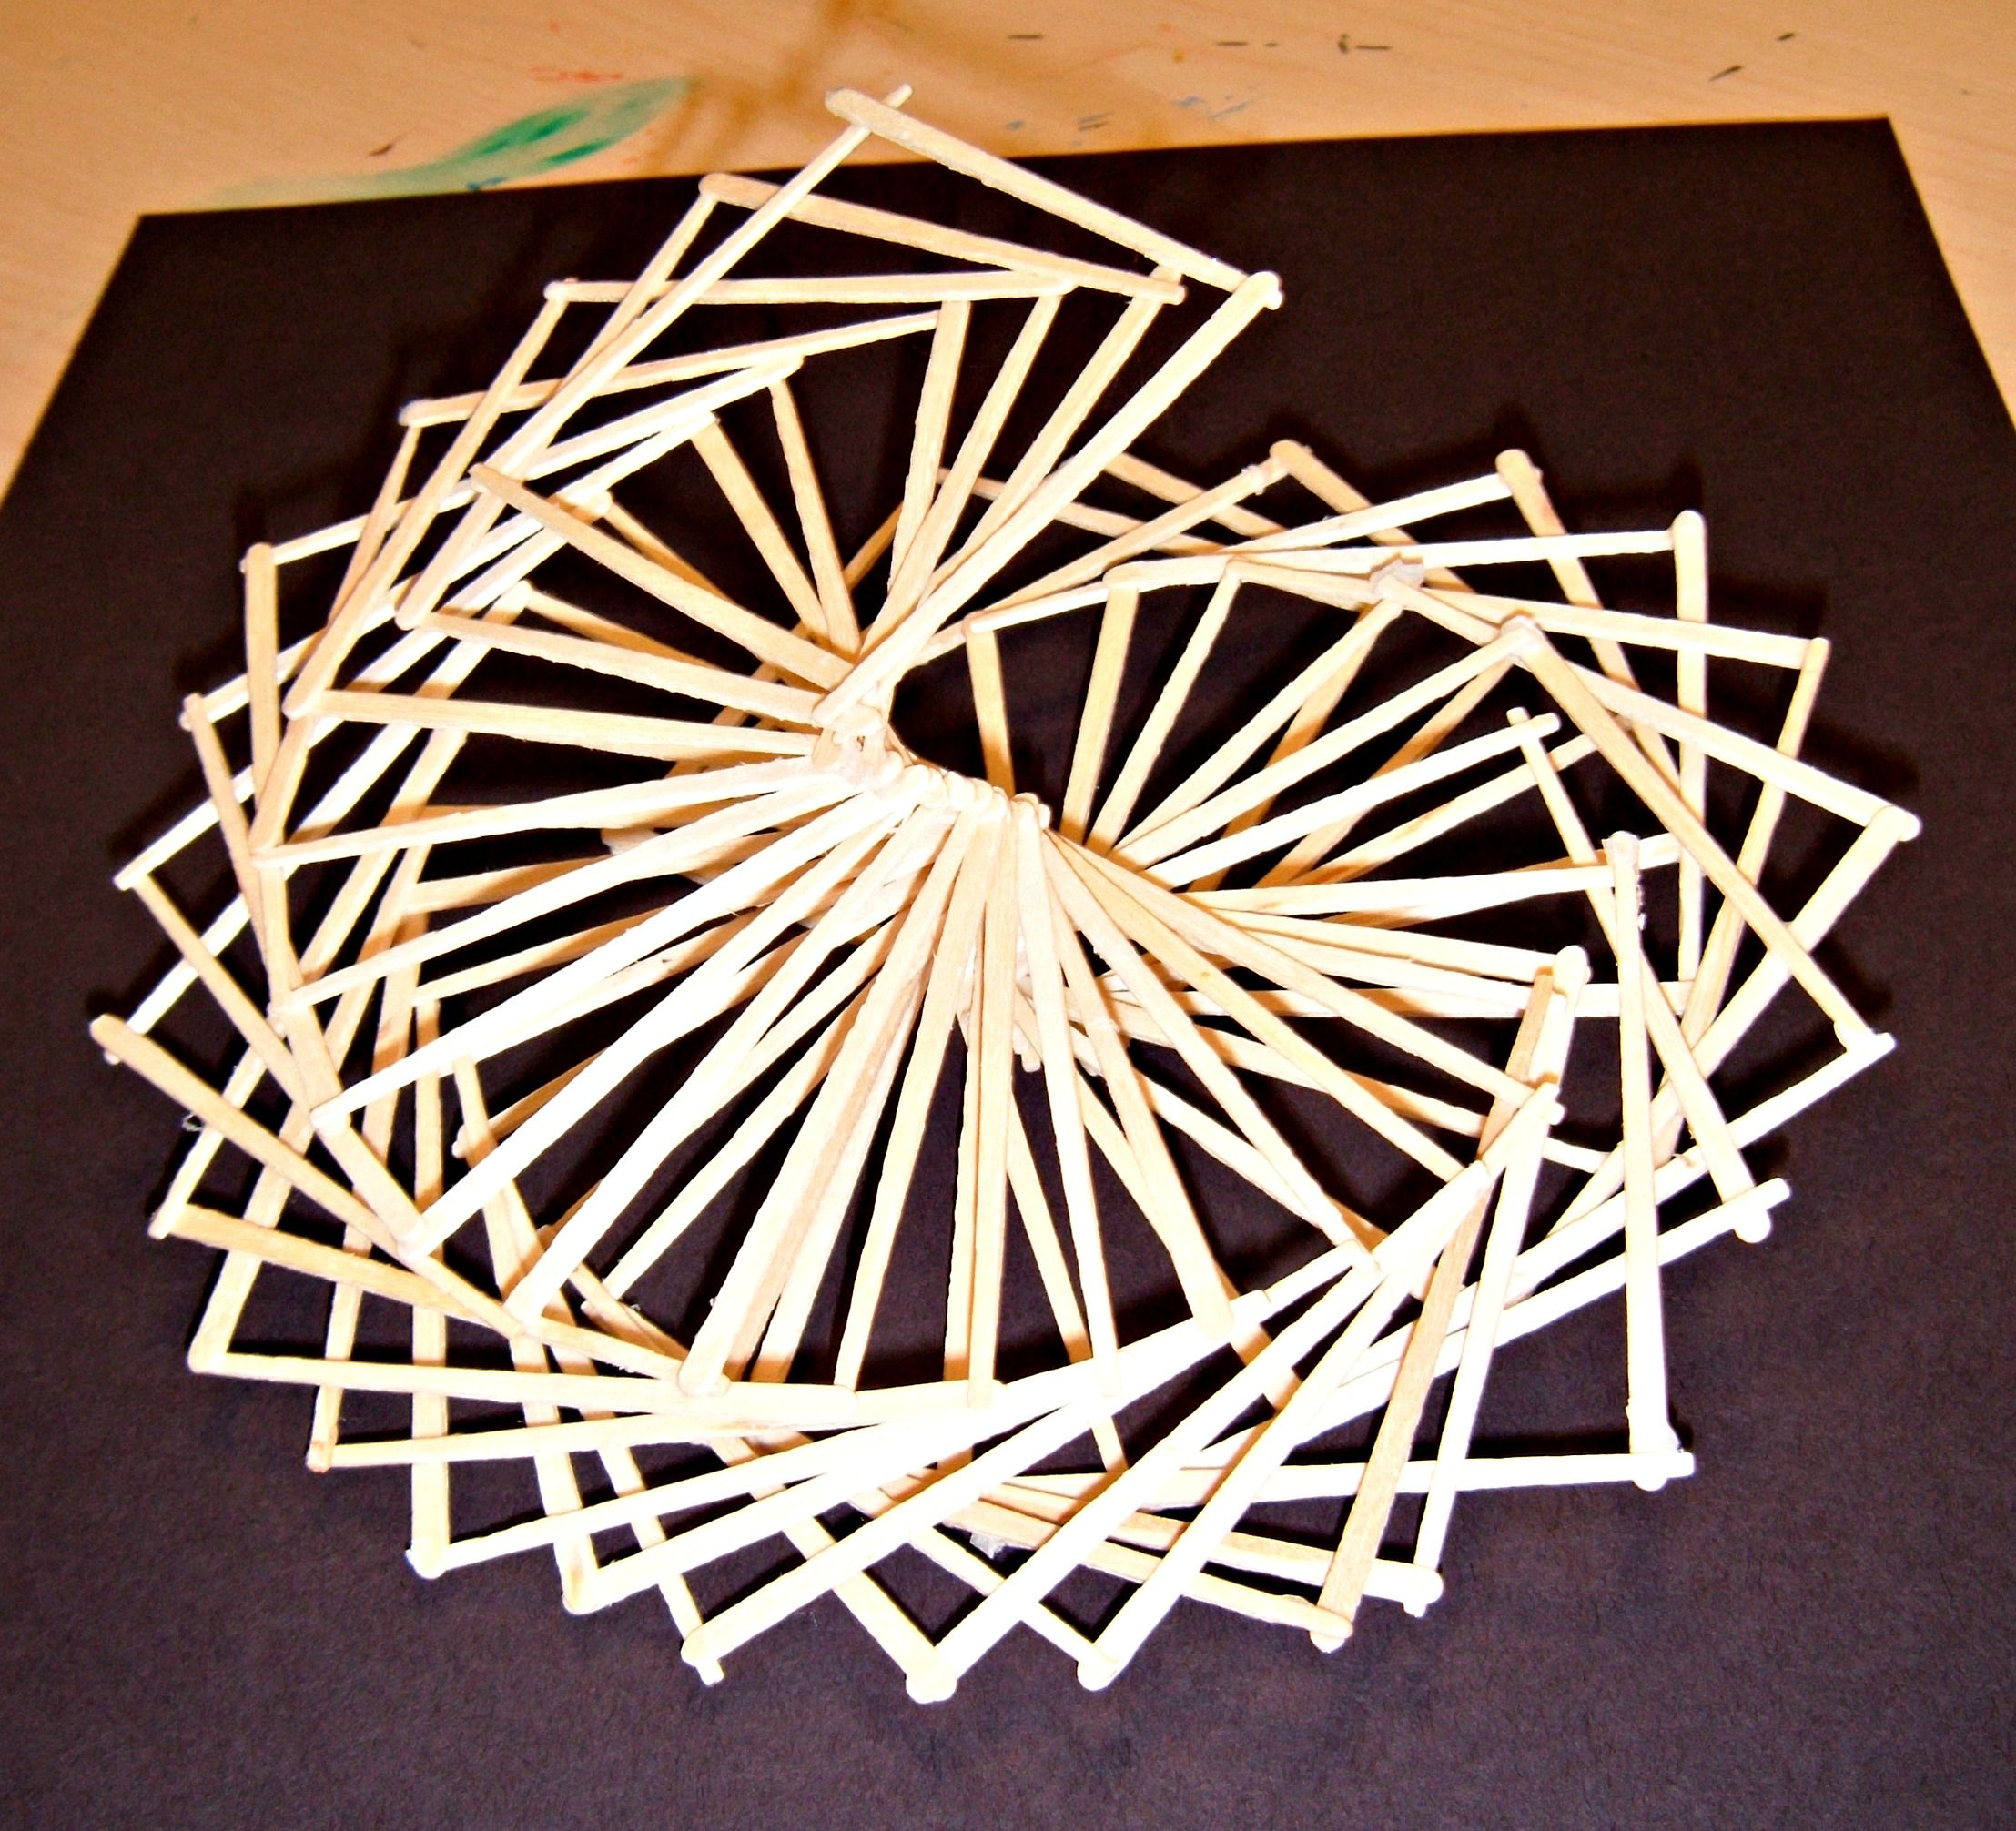 This Is A Lesson With Step By Step Directions For Creating Paper Linear Sculptures Using Toothpicks Seni Geometri Ide